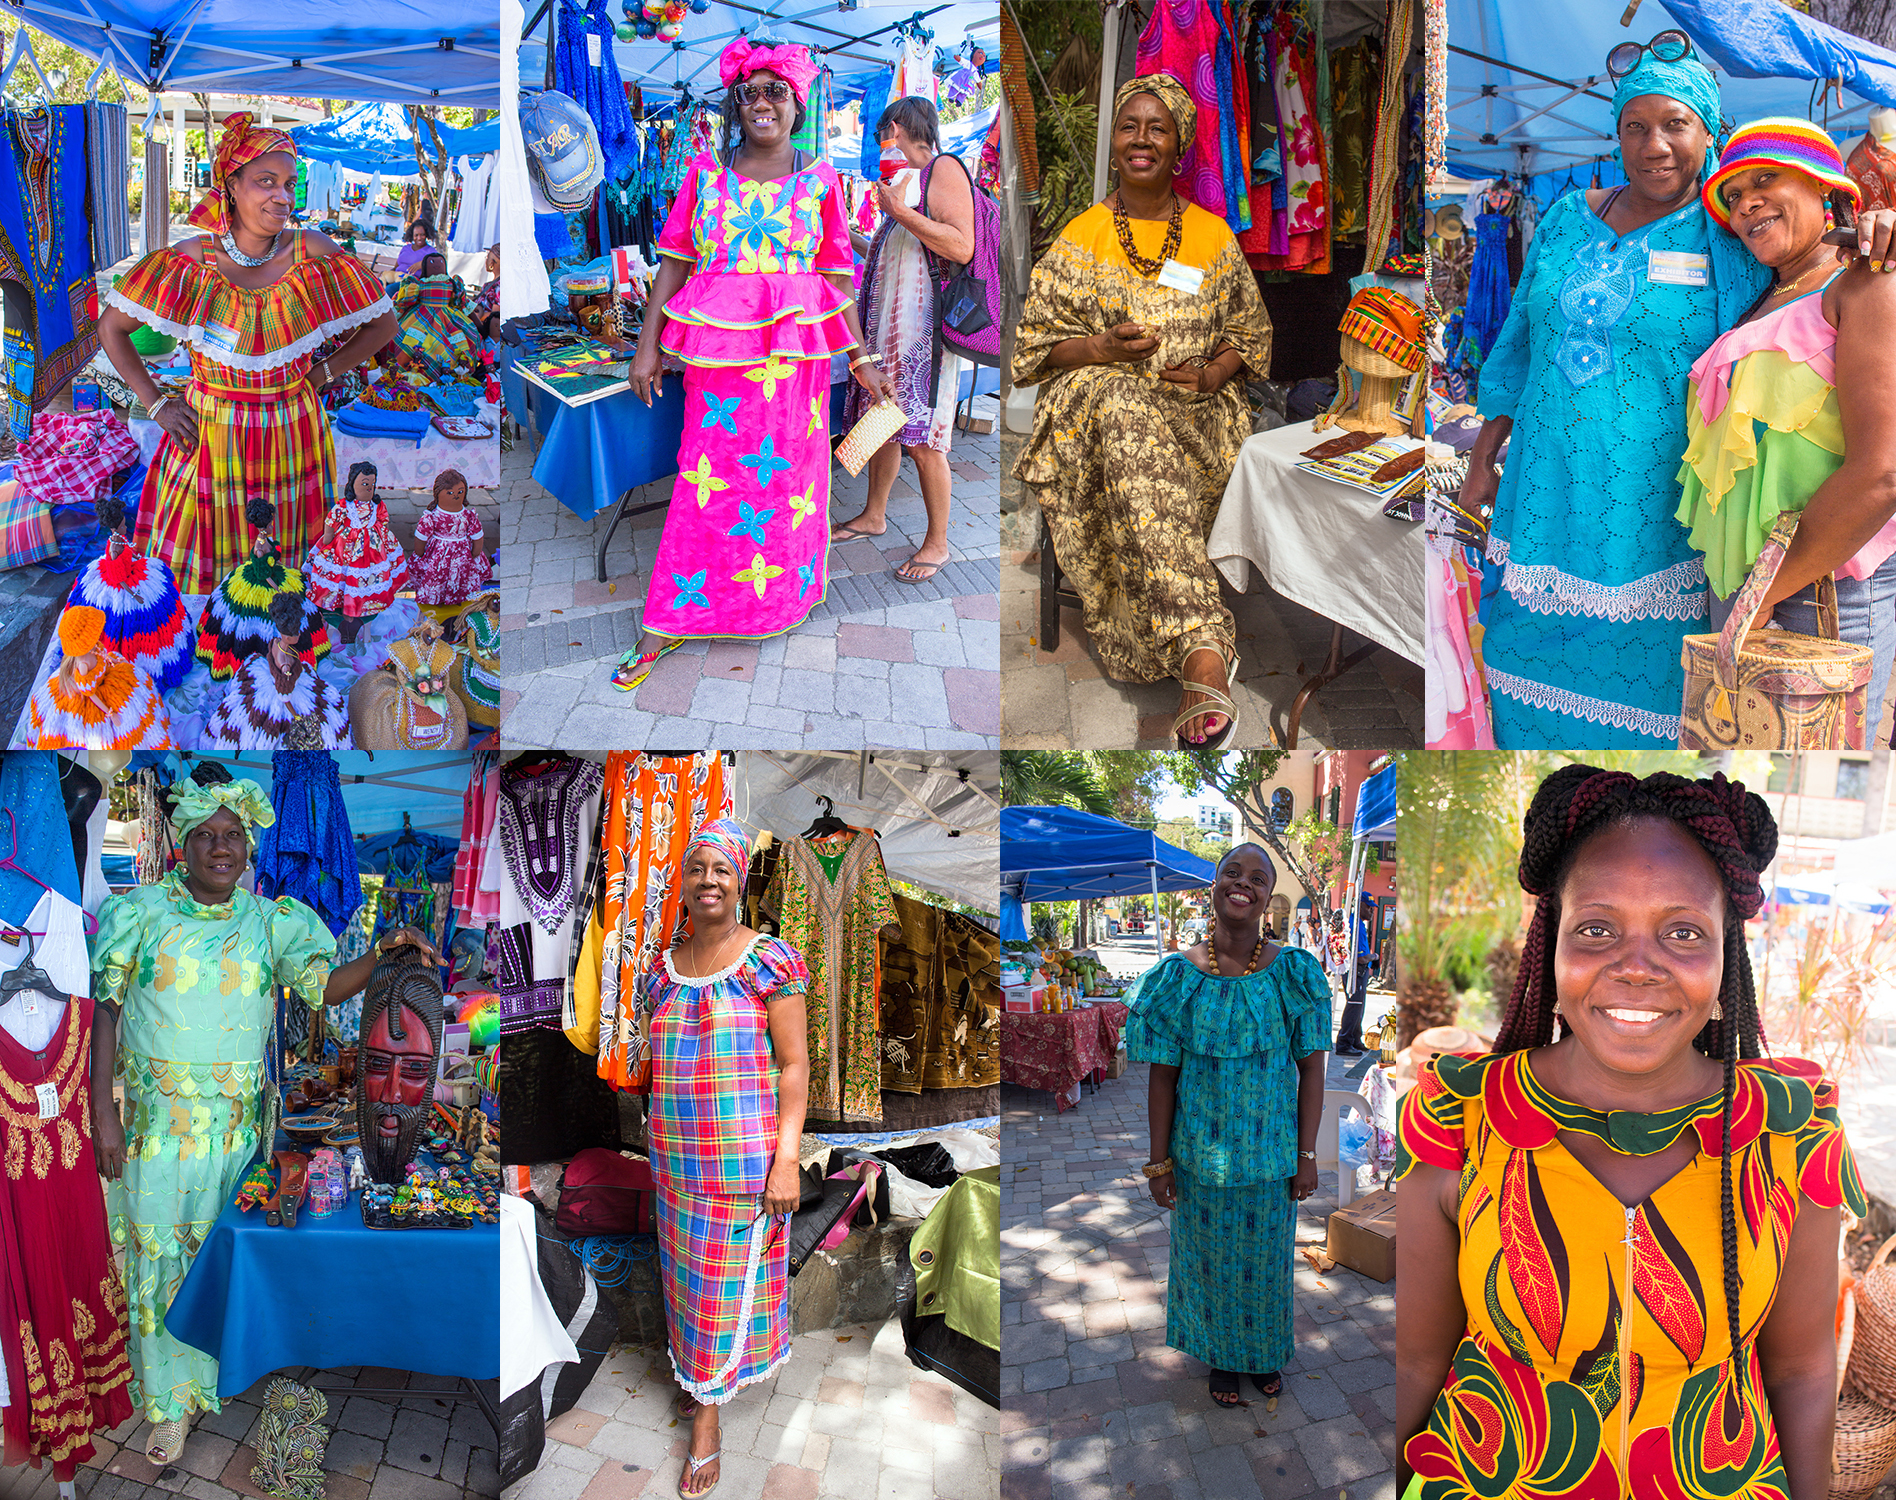 A collection of exhibitors in the park wearing traditional dress